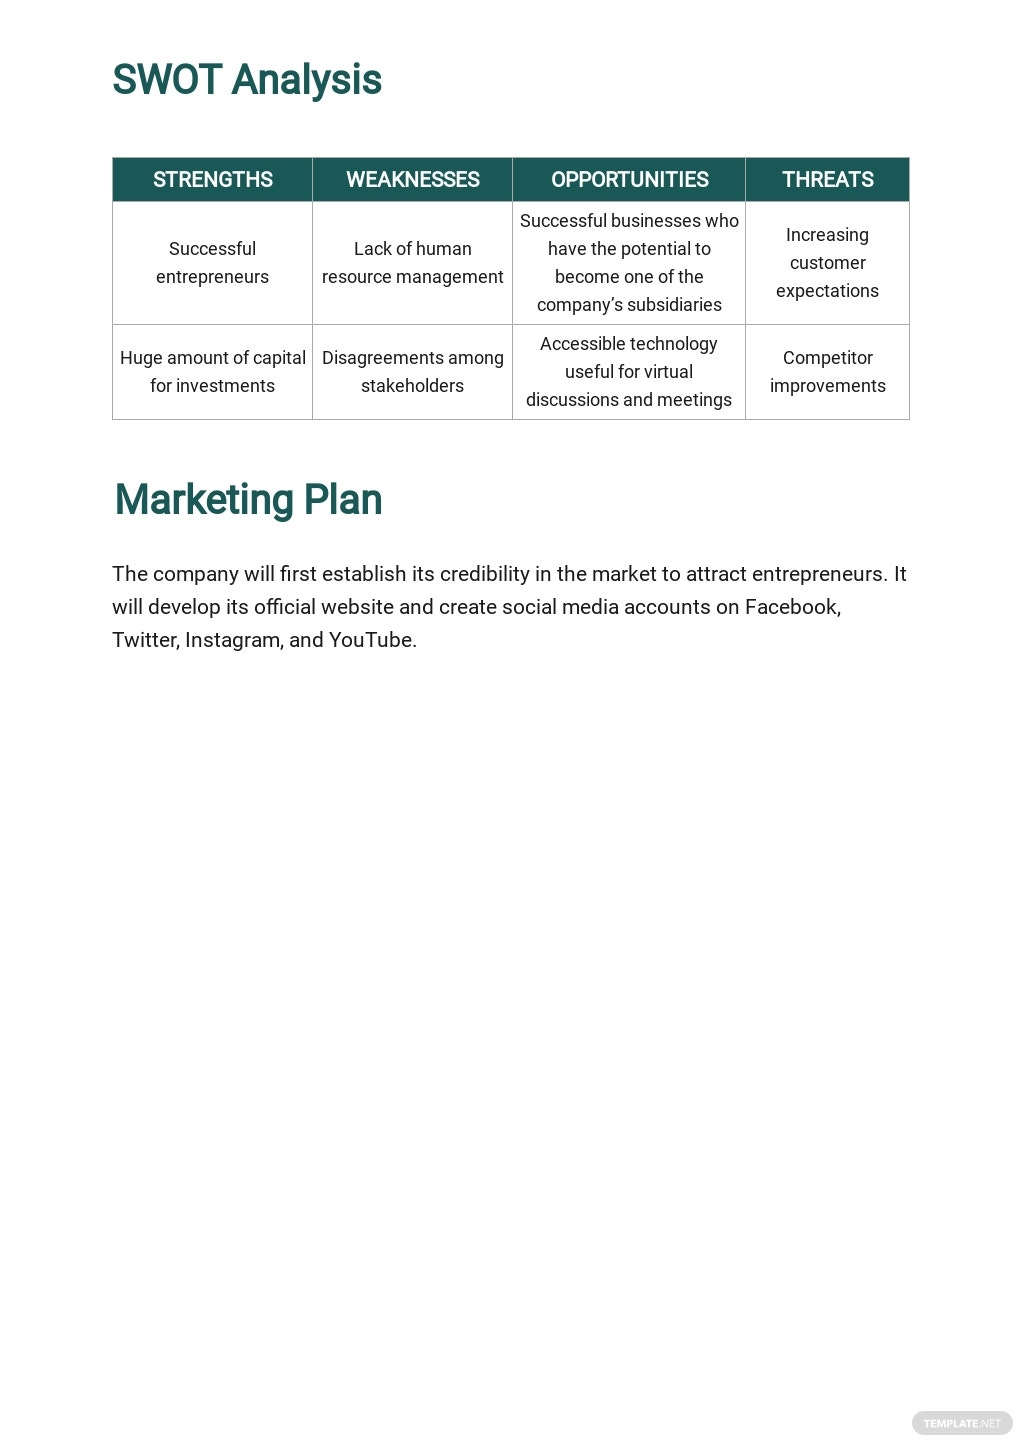 Holding Company Business Plan Template 4.jpe